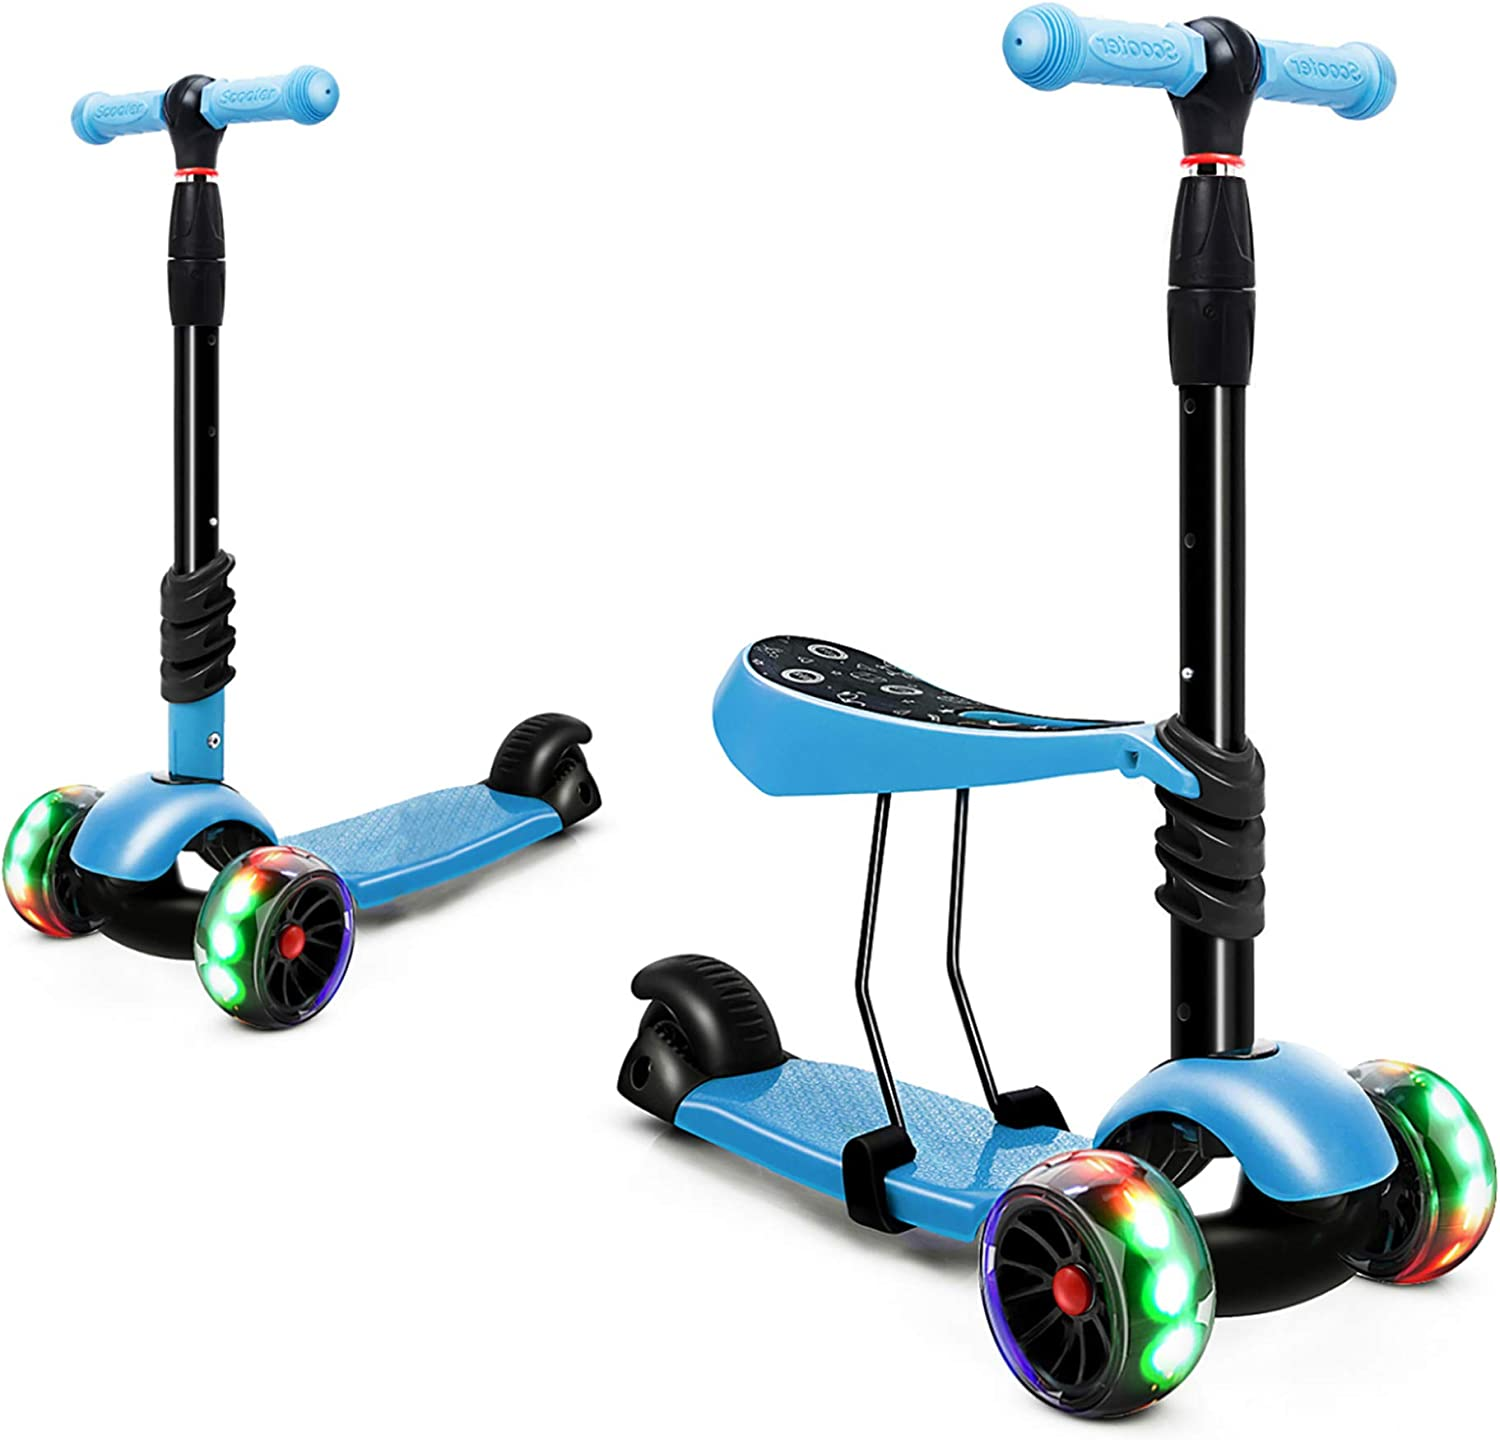 Kick Scooter Kids Scooter 4 Wheel Scooter Boys Girls,Green 3 Height Adjustable Pu Wheels Extra Wide Deck Best Gifts for Kids